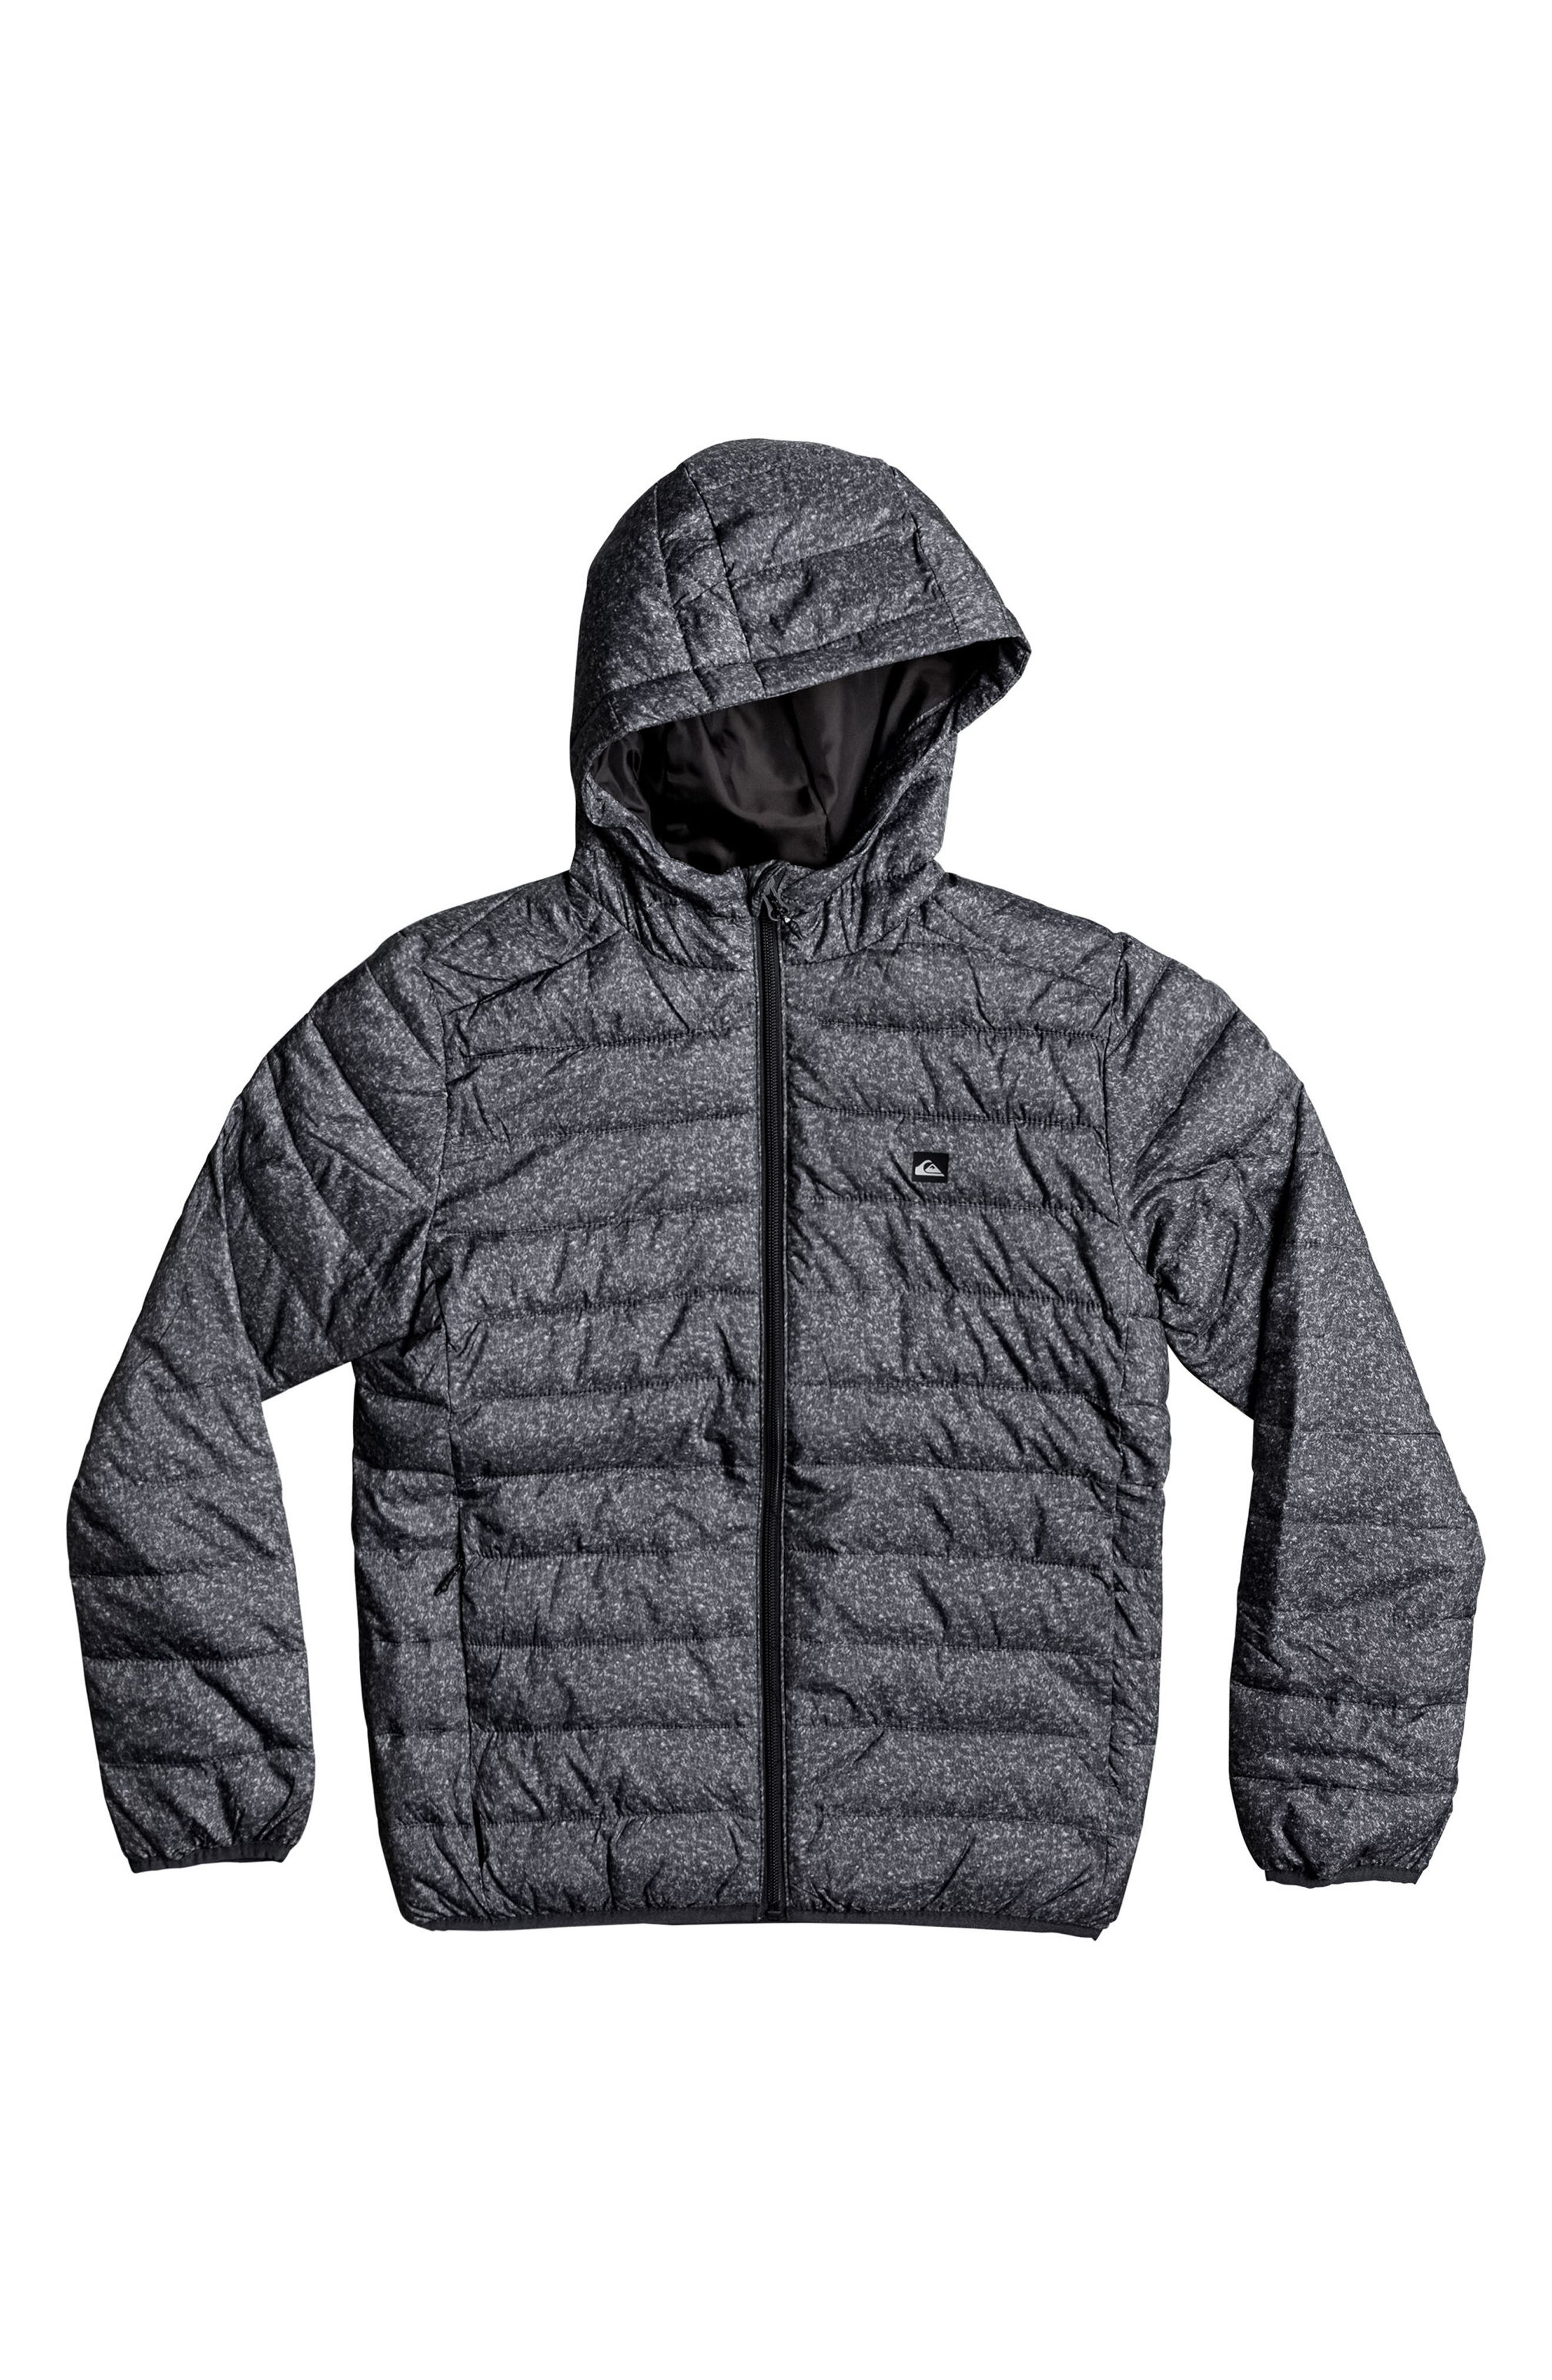 Scaly Water Resistant Hooded Puffer Jacket,                             Main thumbnail 1, color,                             Dark Grey Heather Scaly